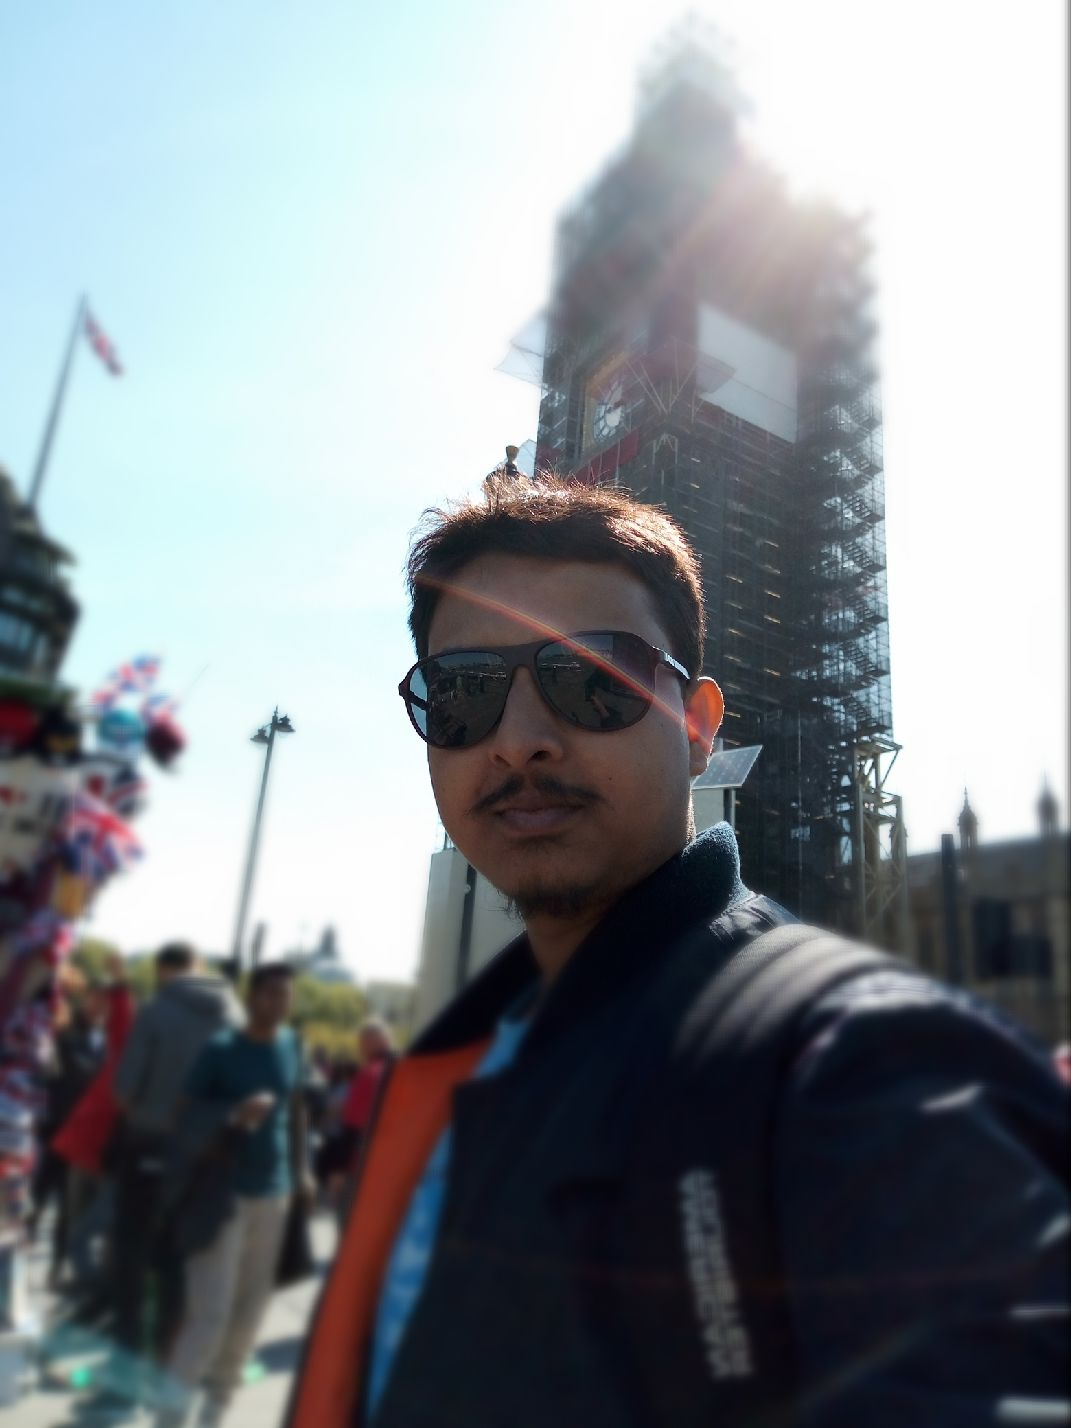 Photo of Big Ben By Susmit Chakraborty